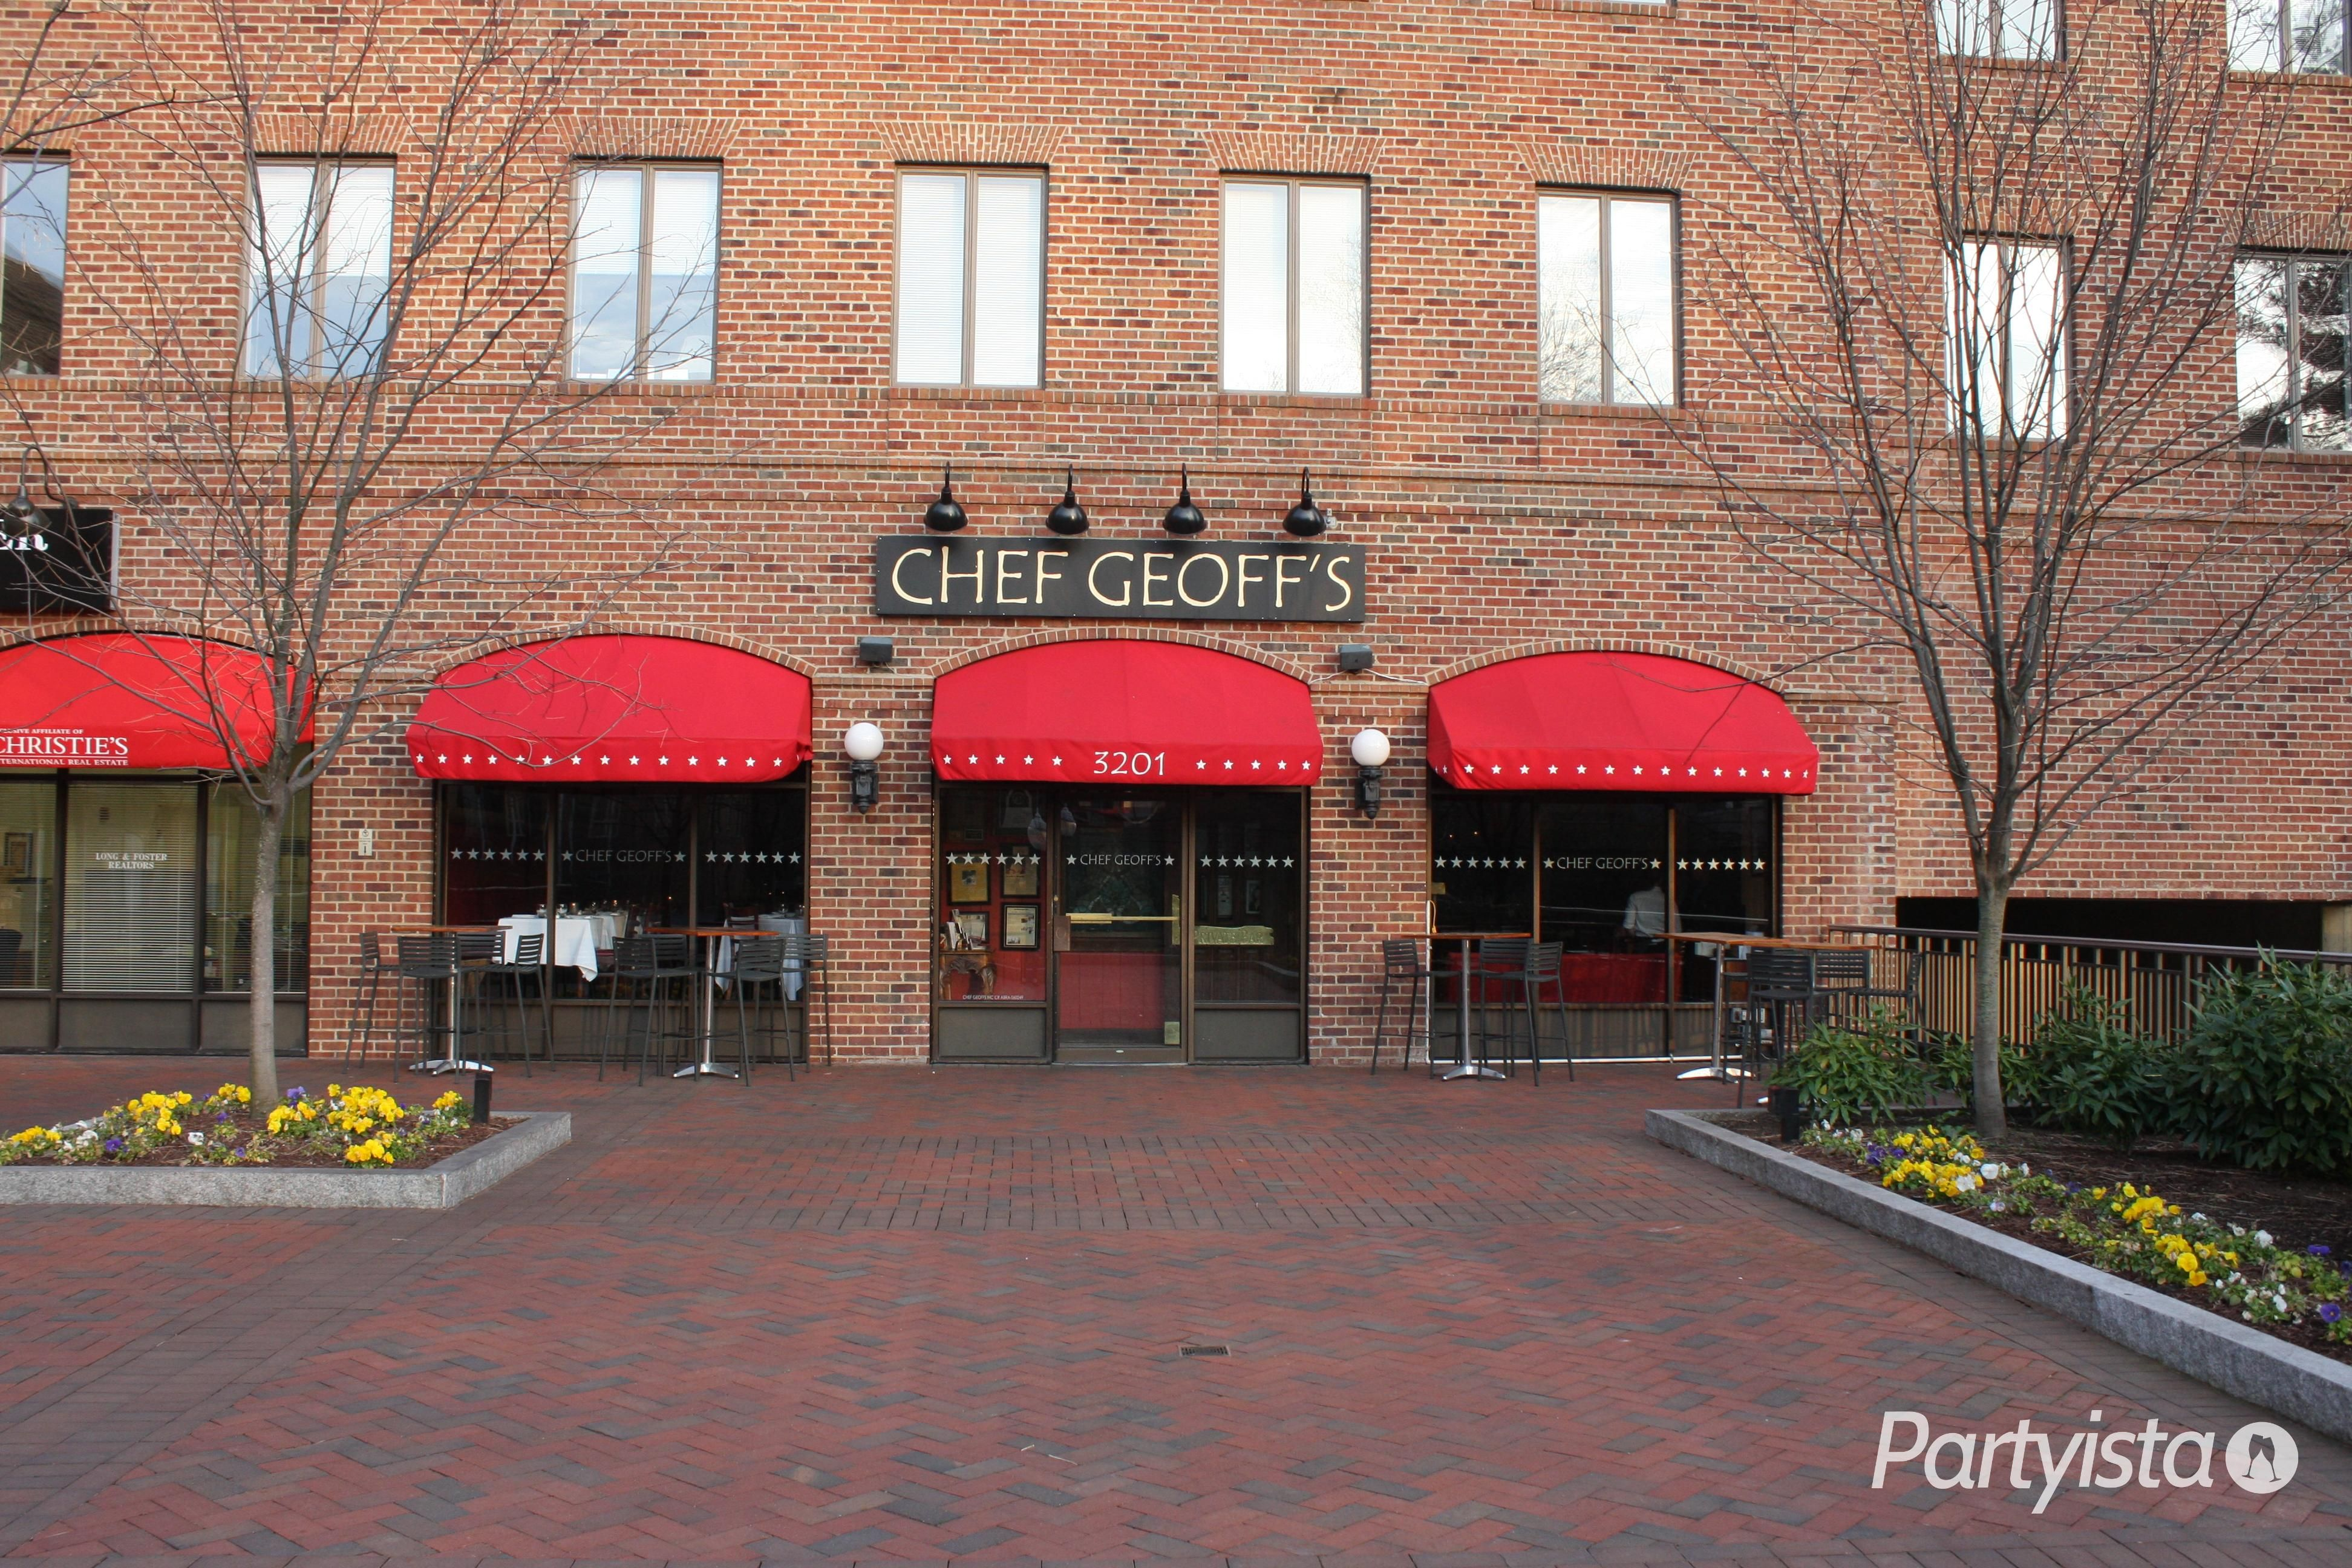 Chef Geoff's | A private room in the back could host a great Washington, DC wedding | www.partyista.com